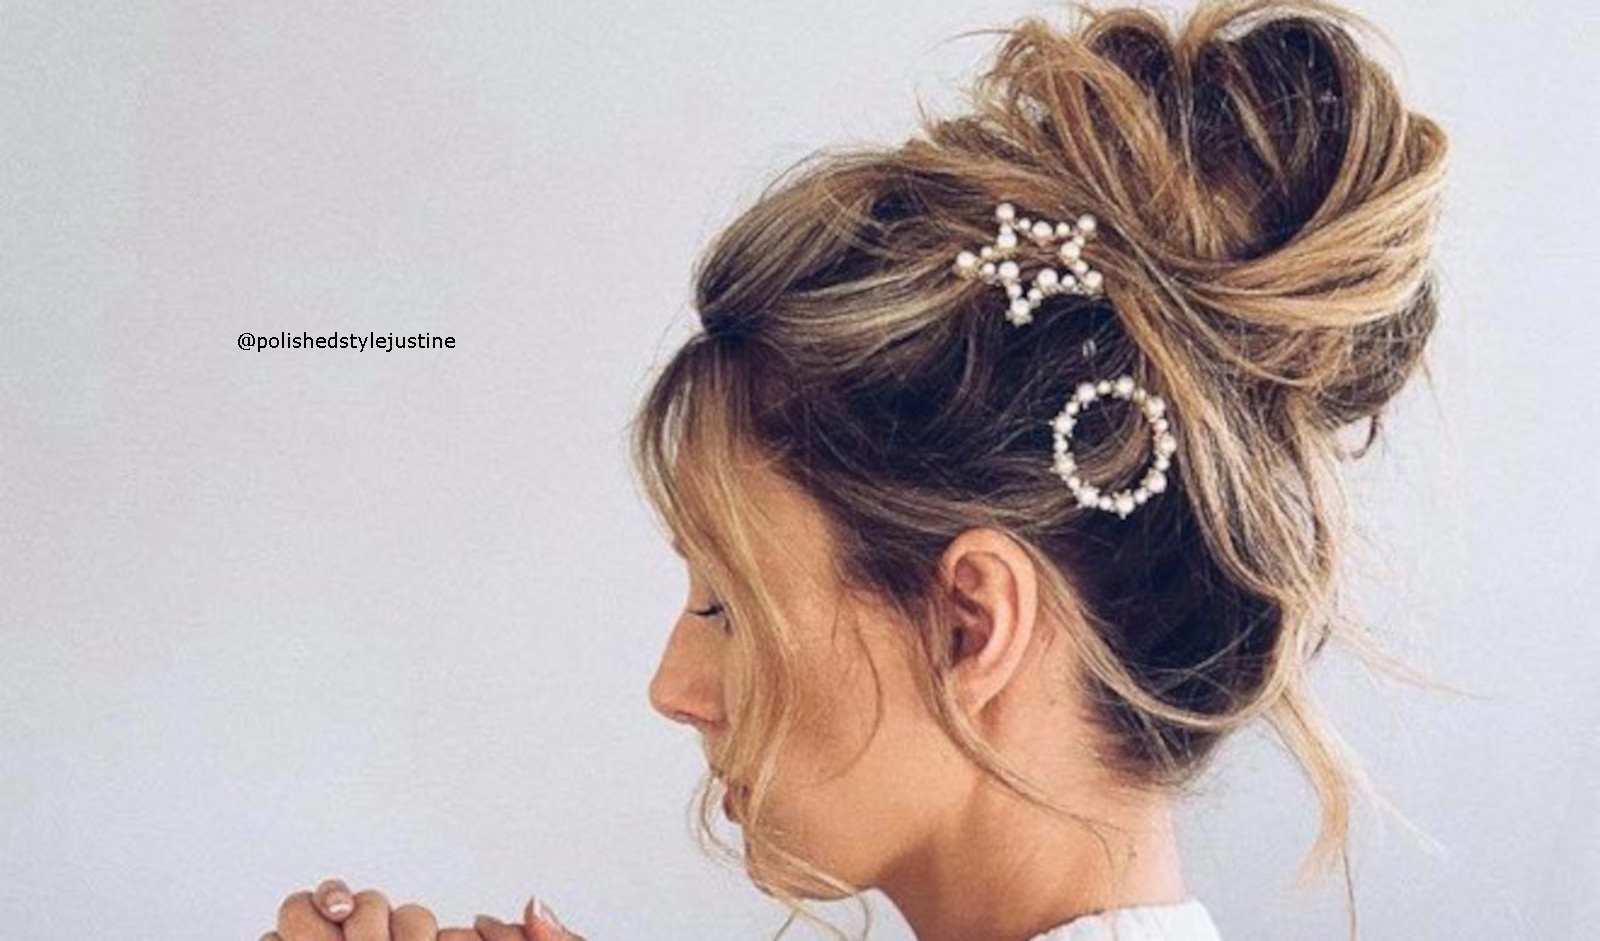 Try These Hairstyles For Summer While You Still Have Time